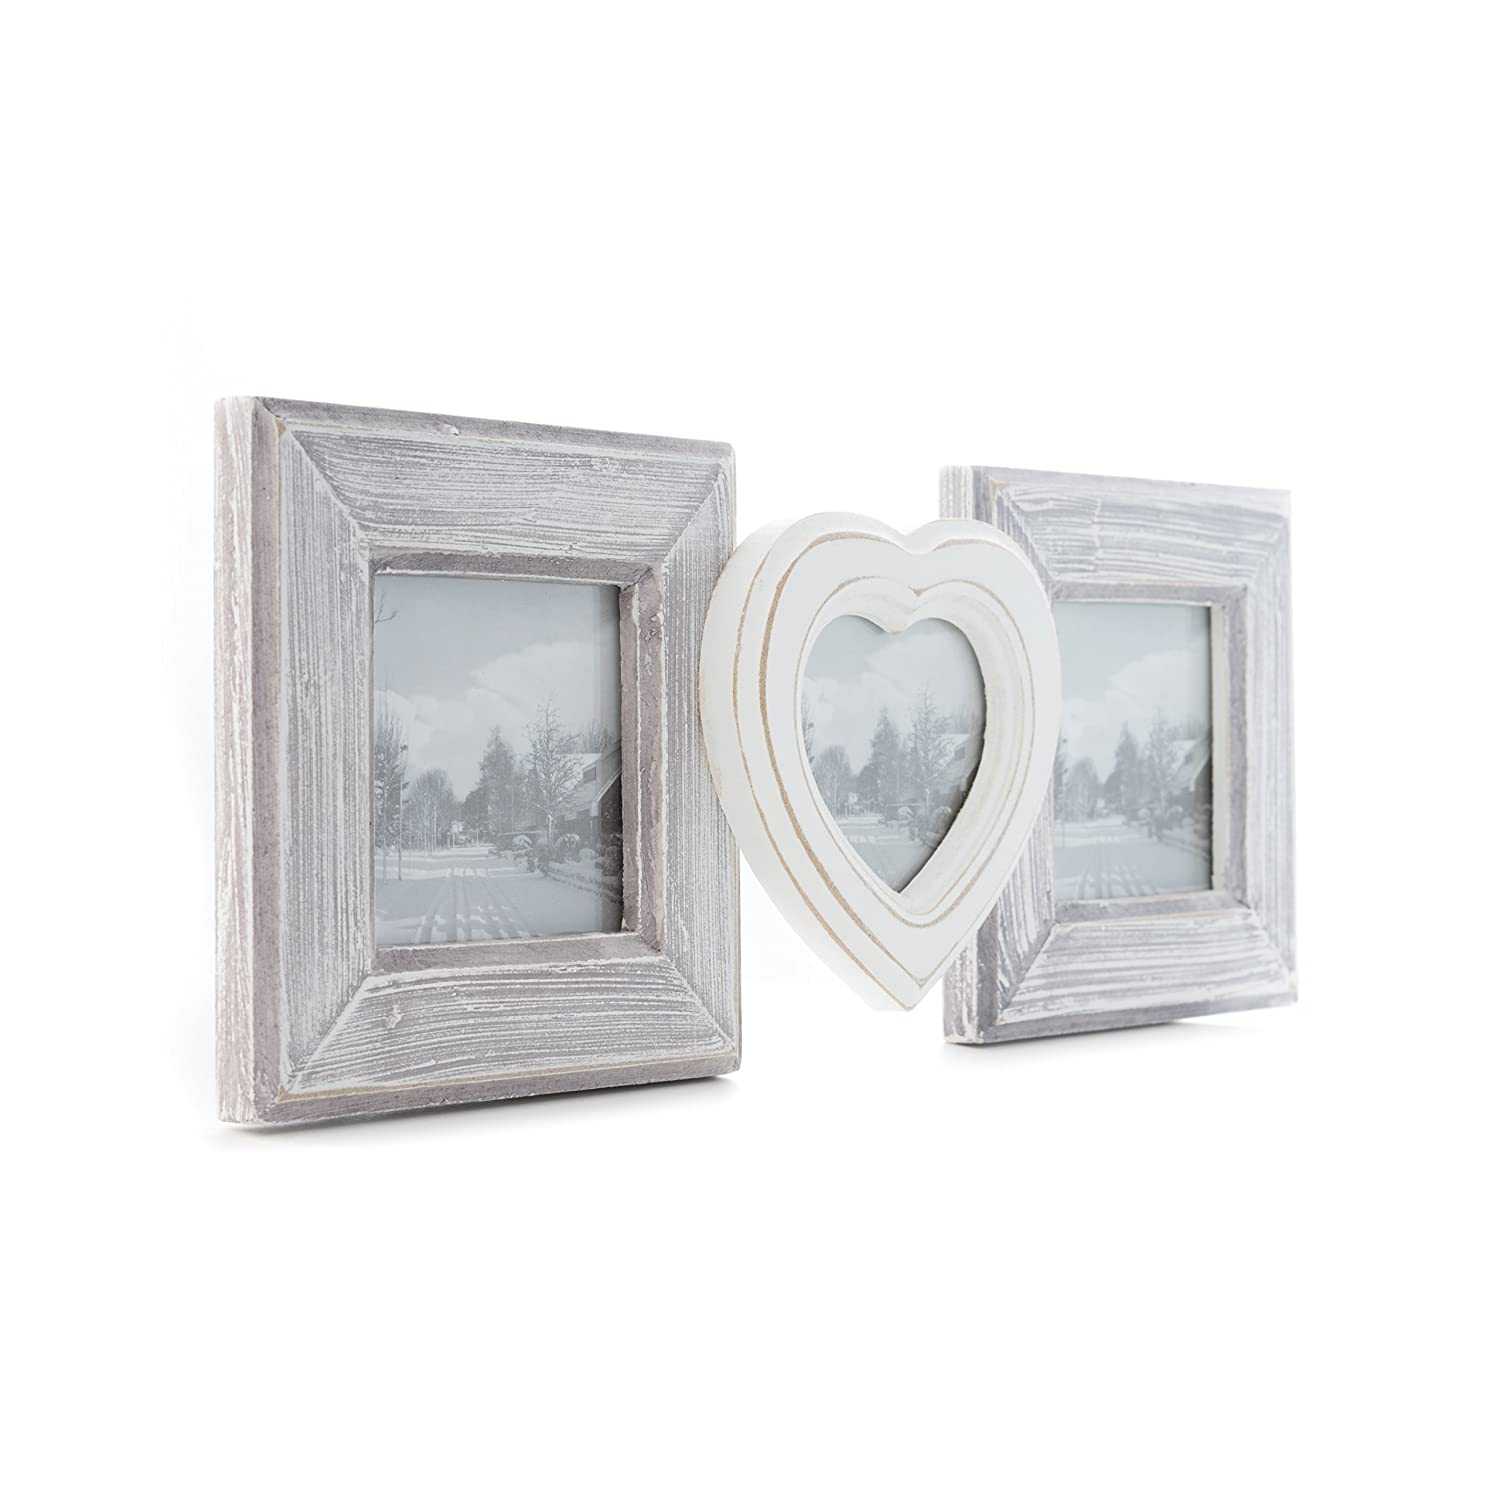 Elbmöbel 3 multi photo frame with heart - wooden collage picture frame classic